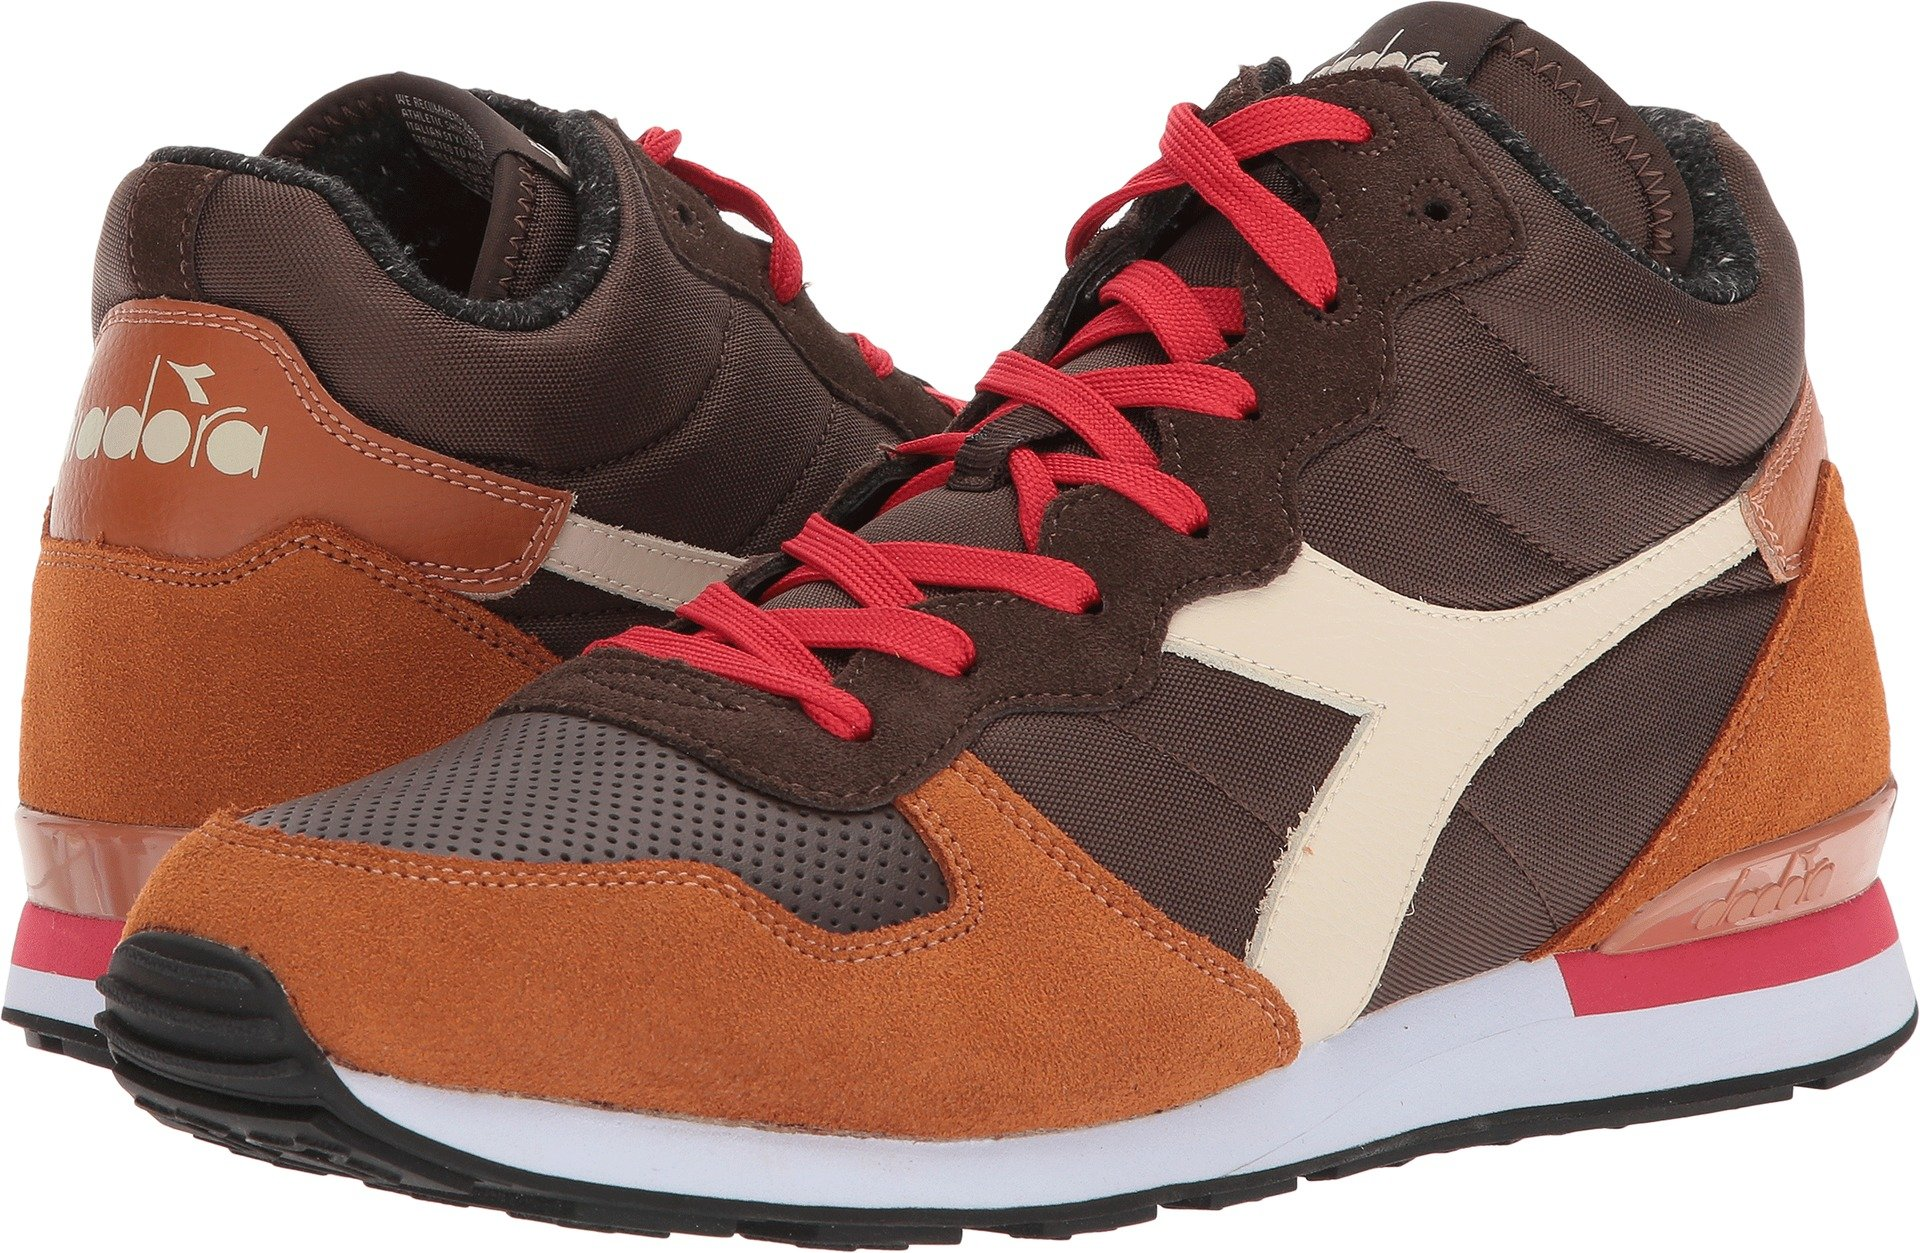 Diadora Unisex Camaro Mid Chocolate Brown/Leather Brown 12.5 Women/11 Men M US by Diadora